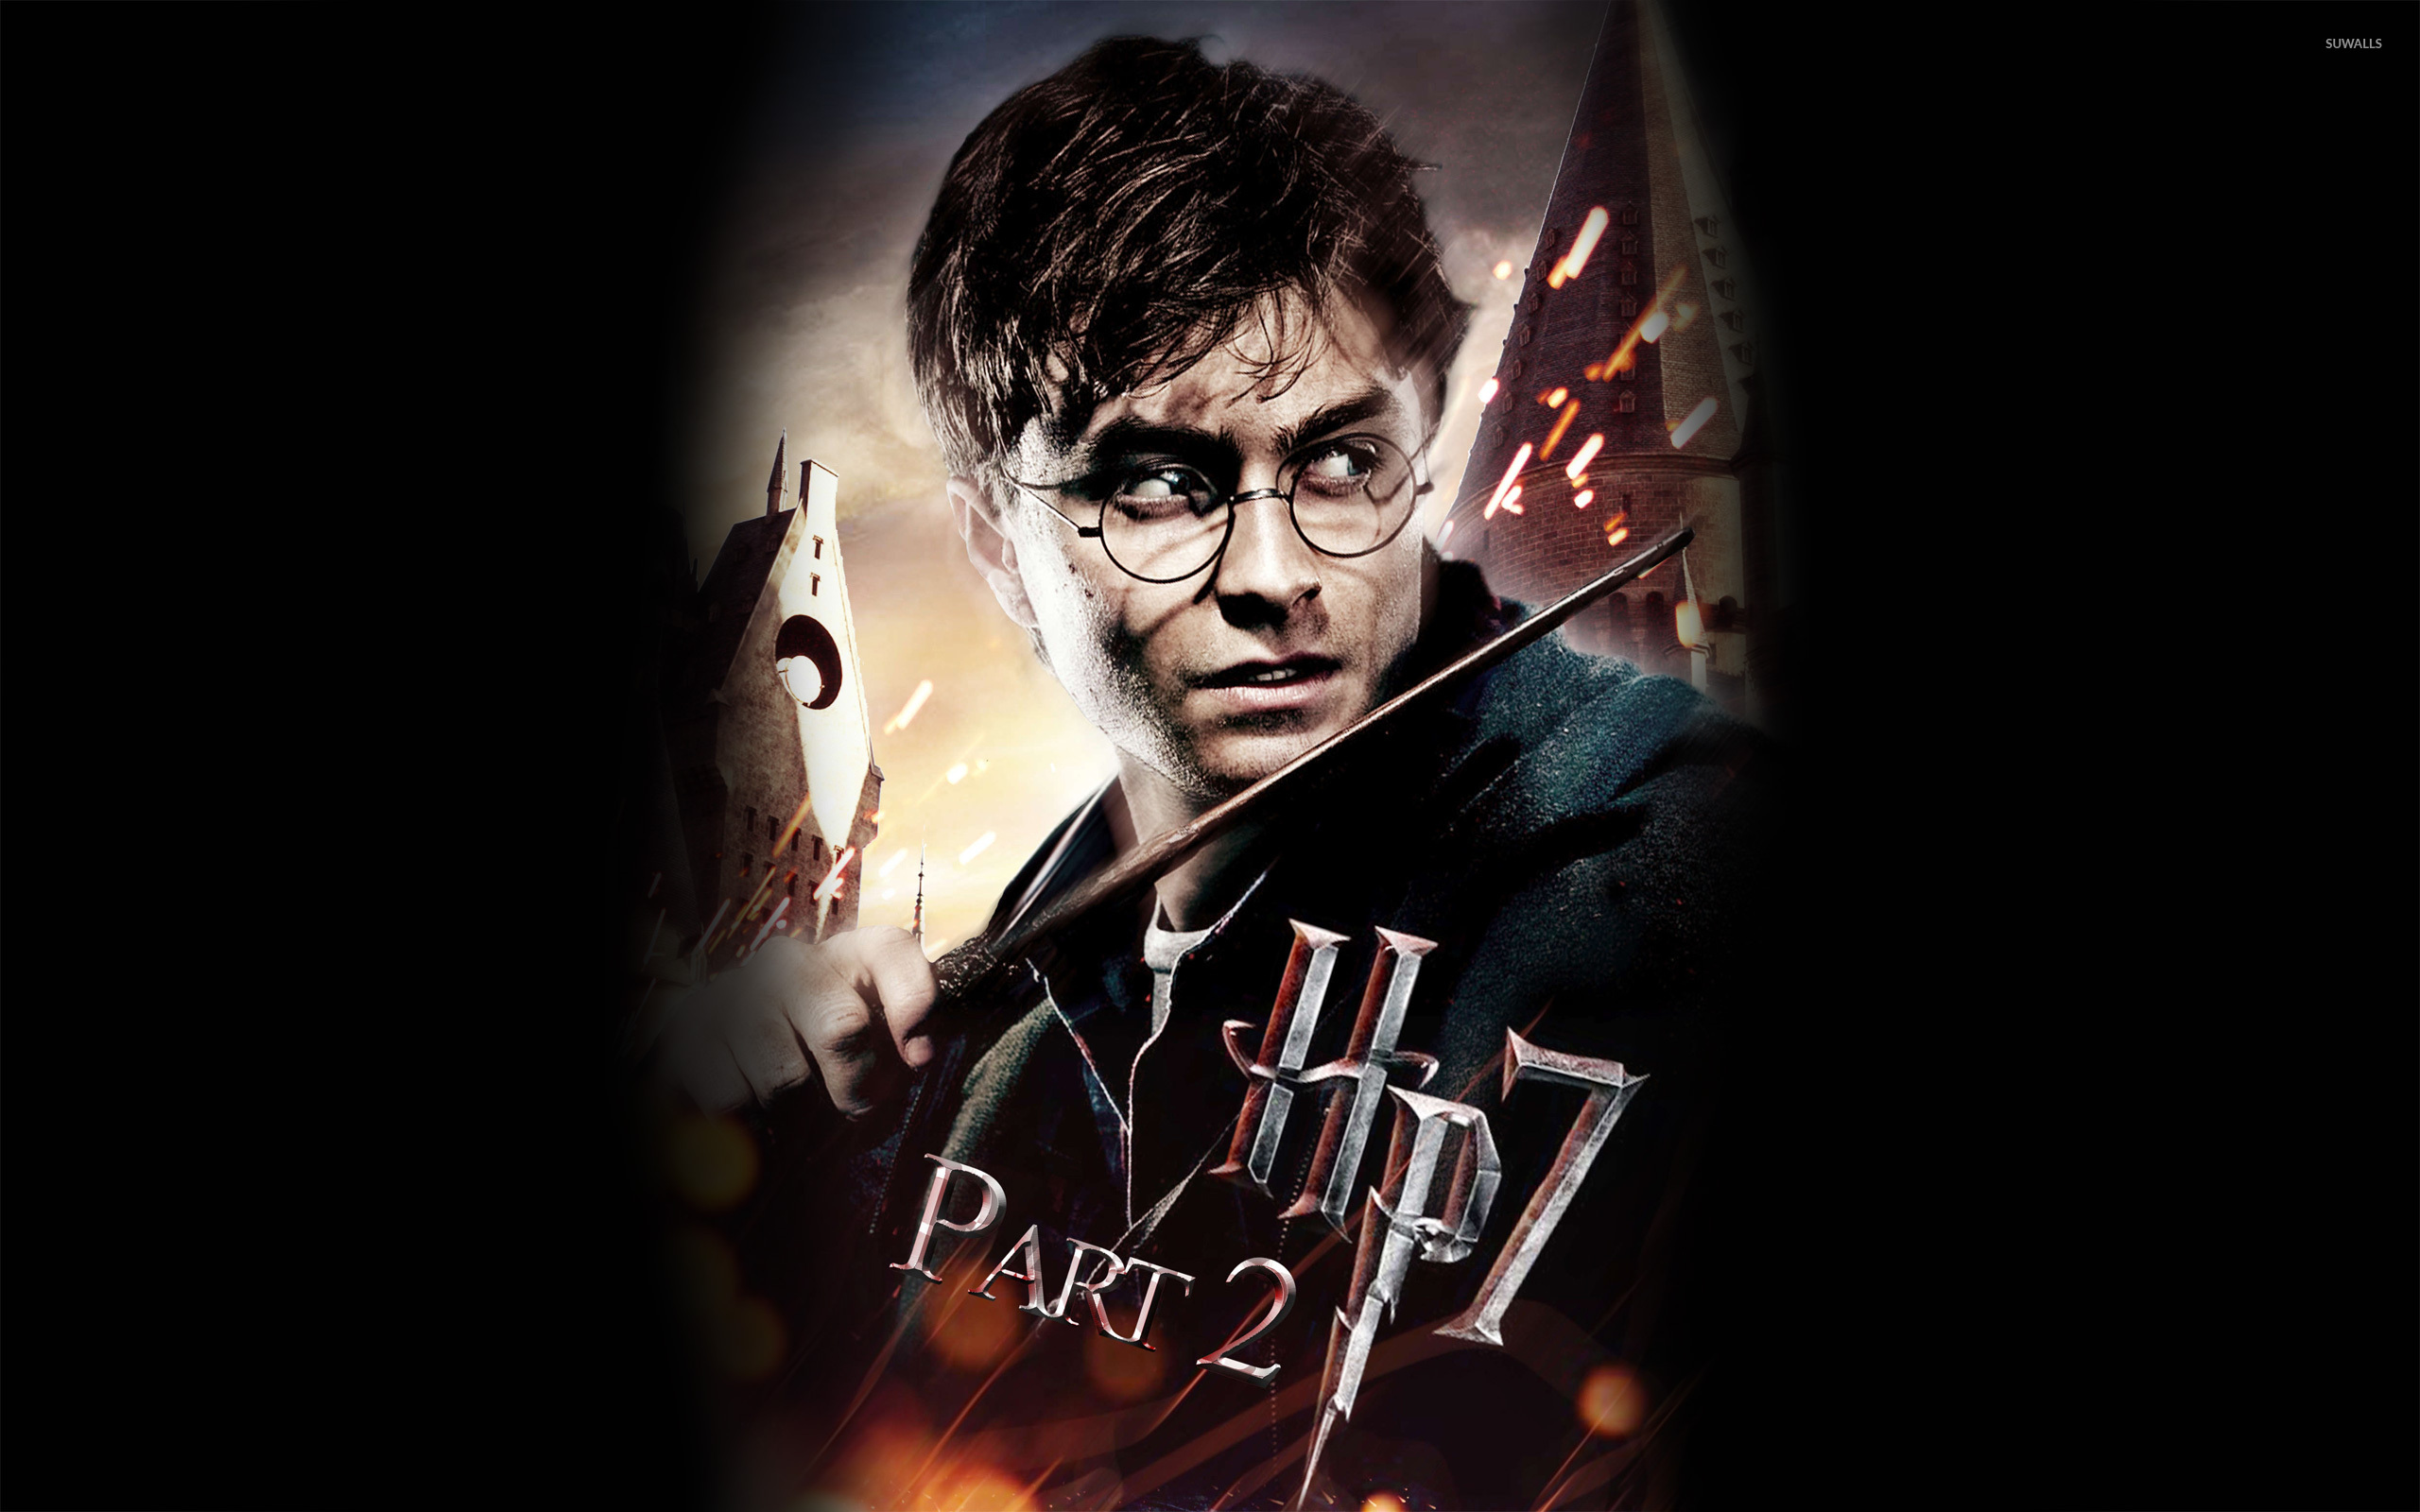 Harry Potter And The Deathly Hallows Part 2 5 Wallpaper